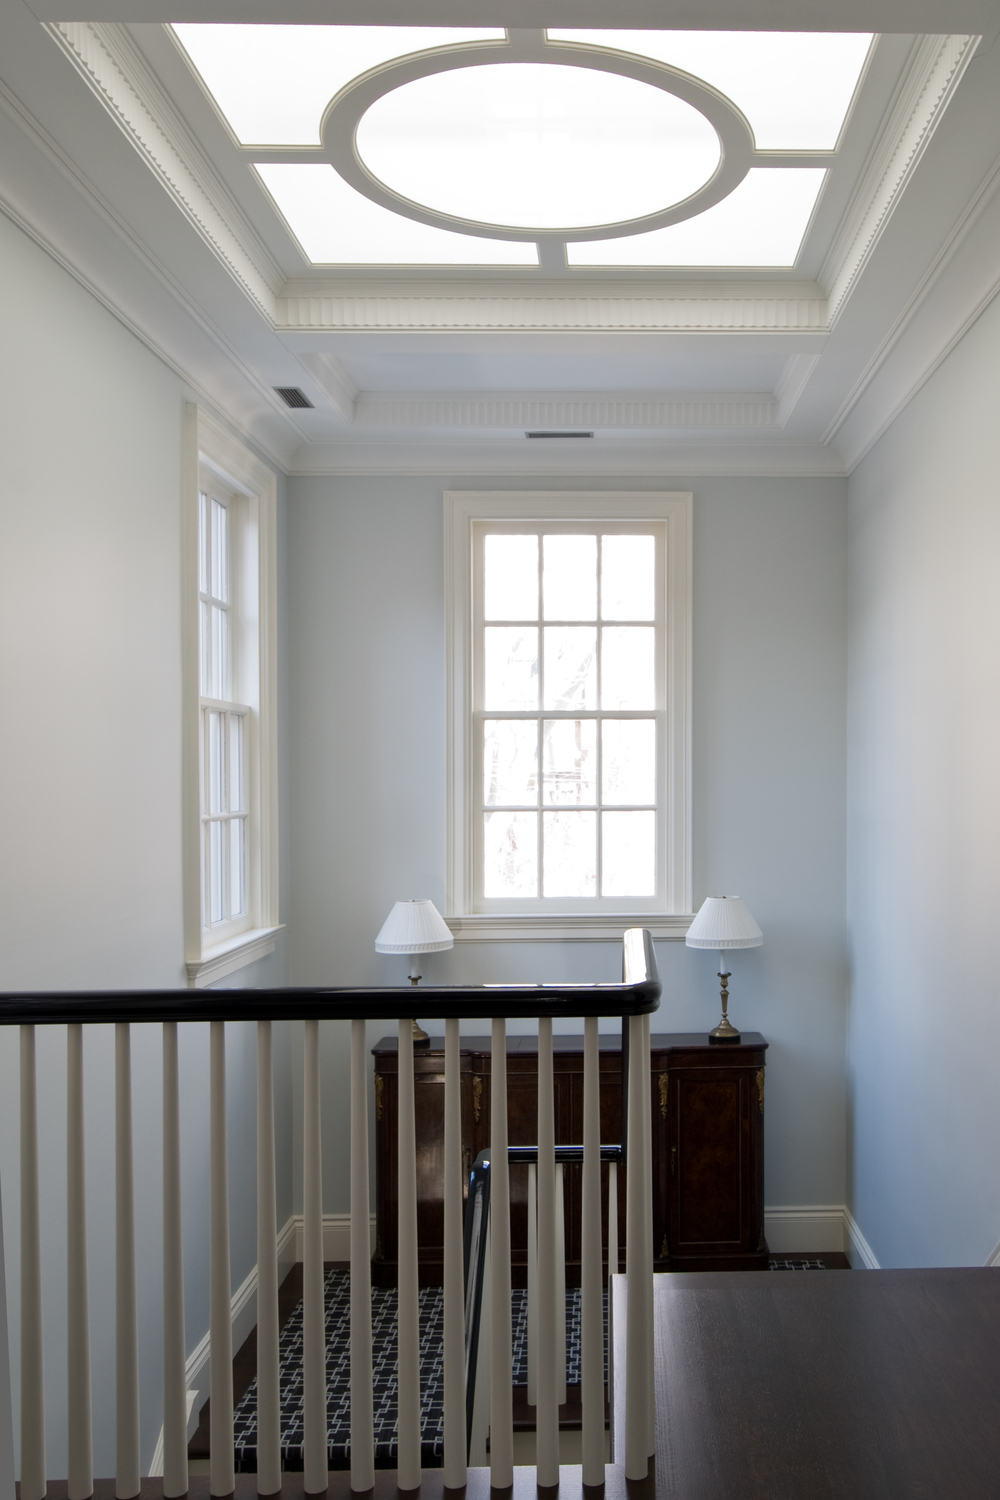 20100128-Interior upstairs sky lens and landing-2.jpg